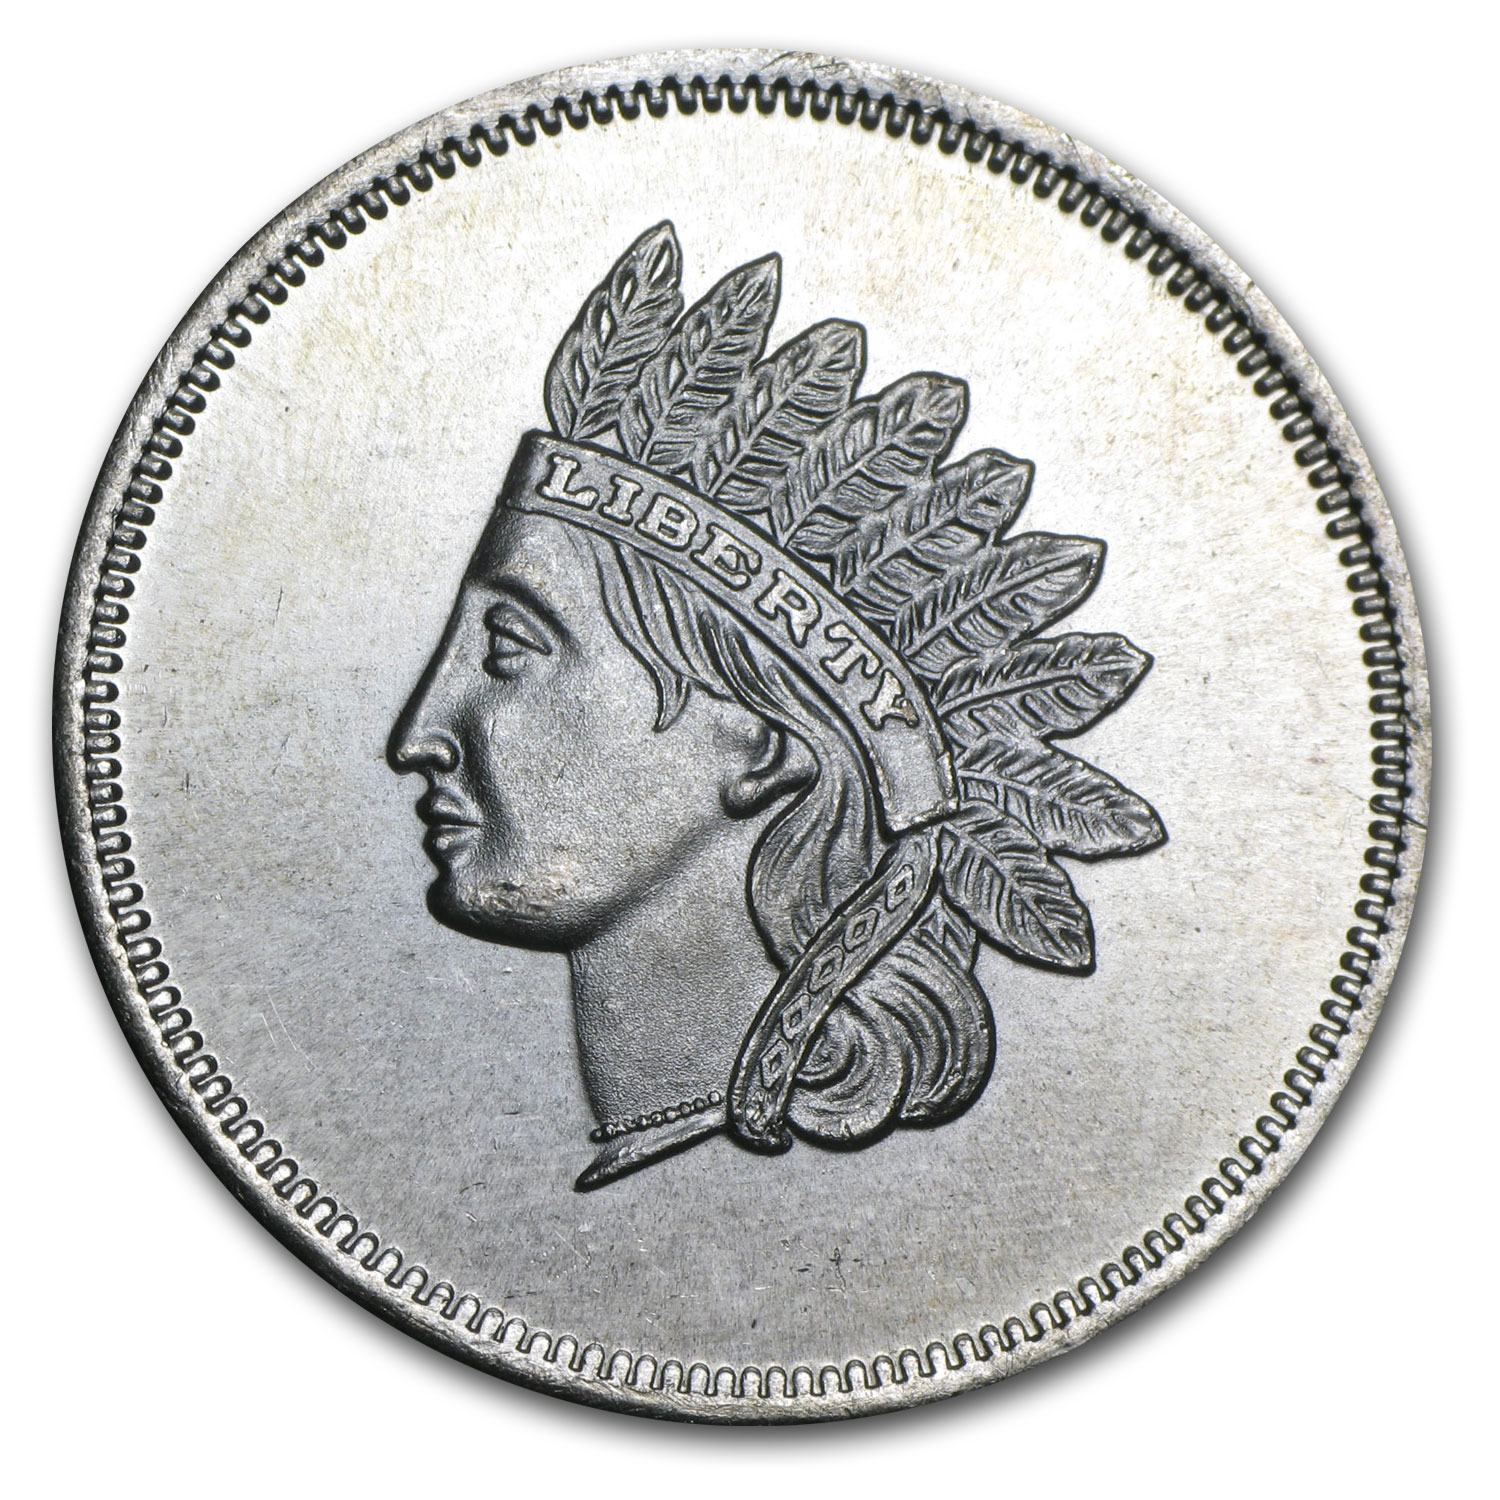 1 oz Silver Rounds - Indian Head Cent (Replica)